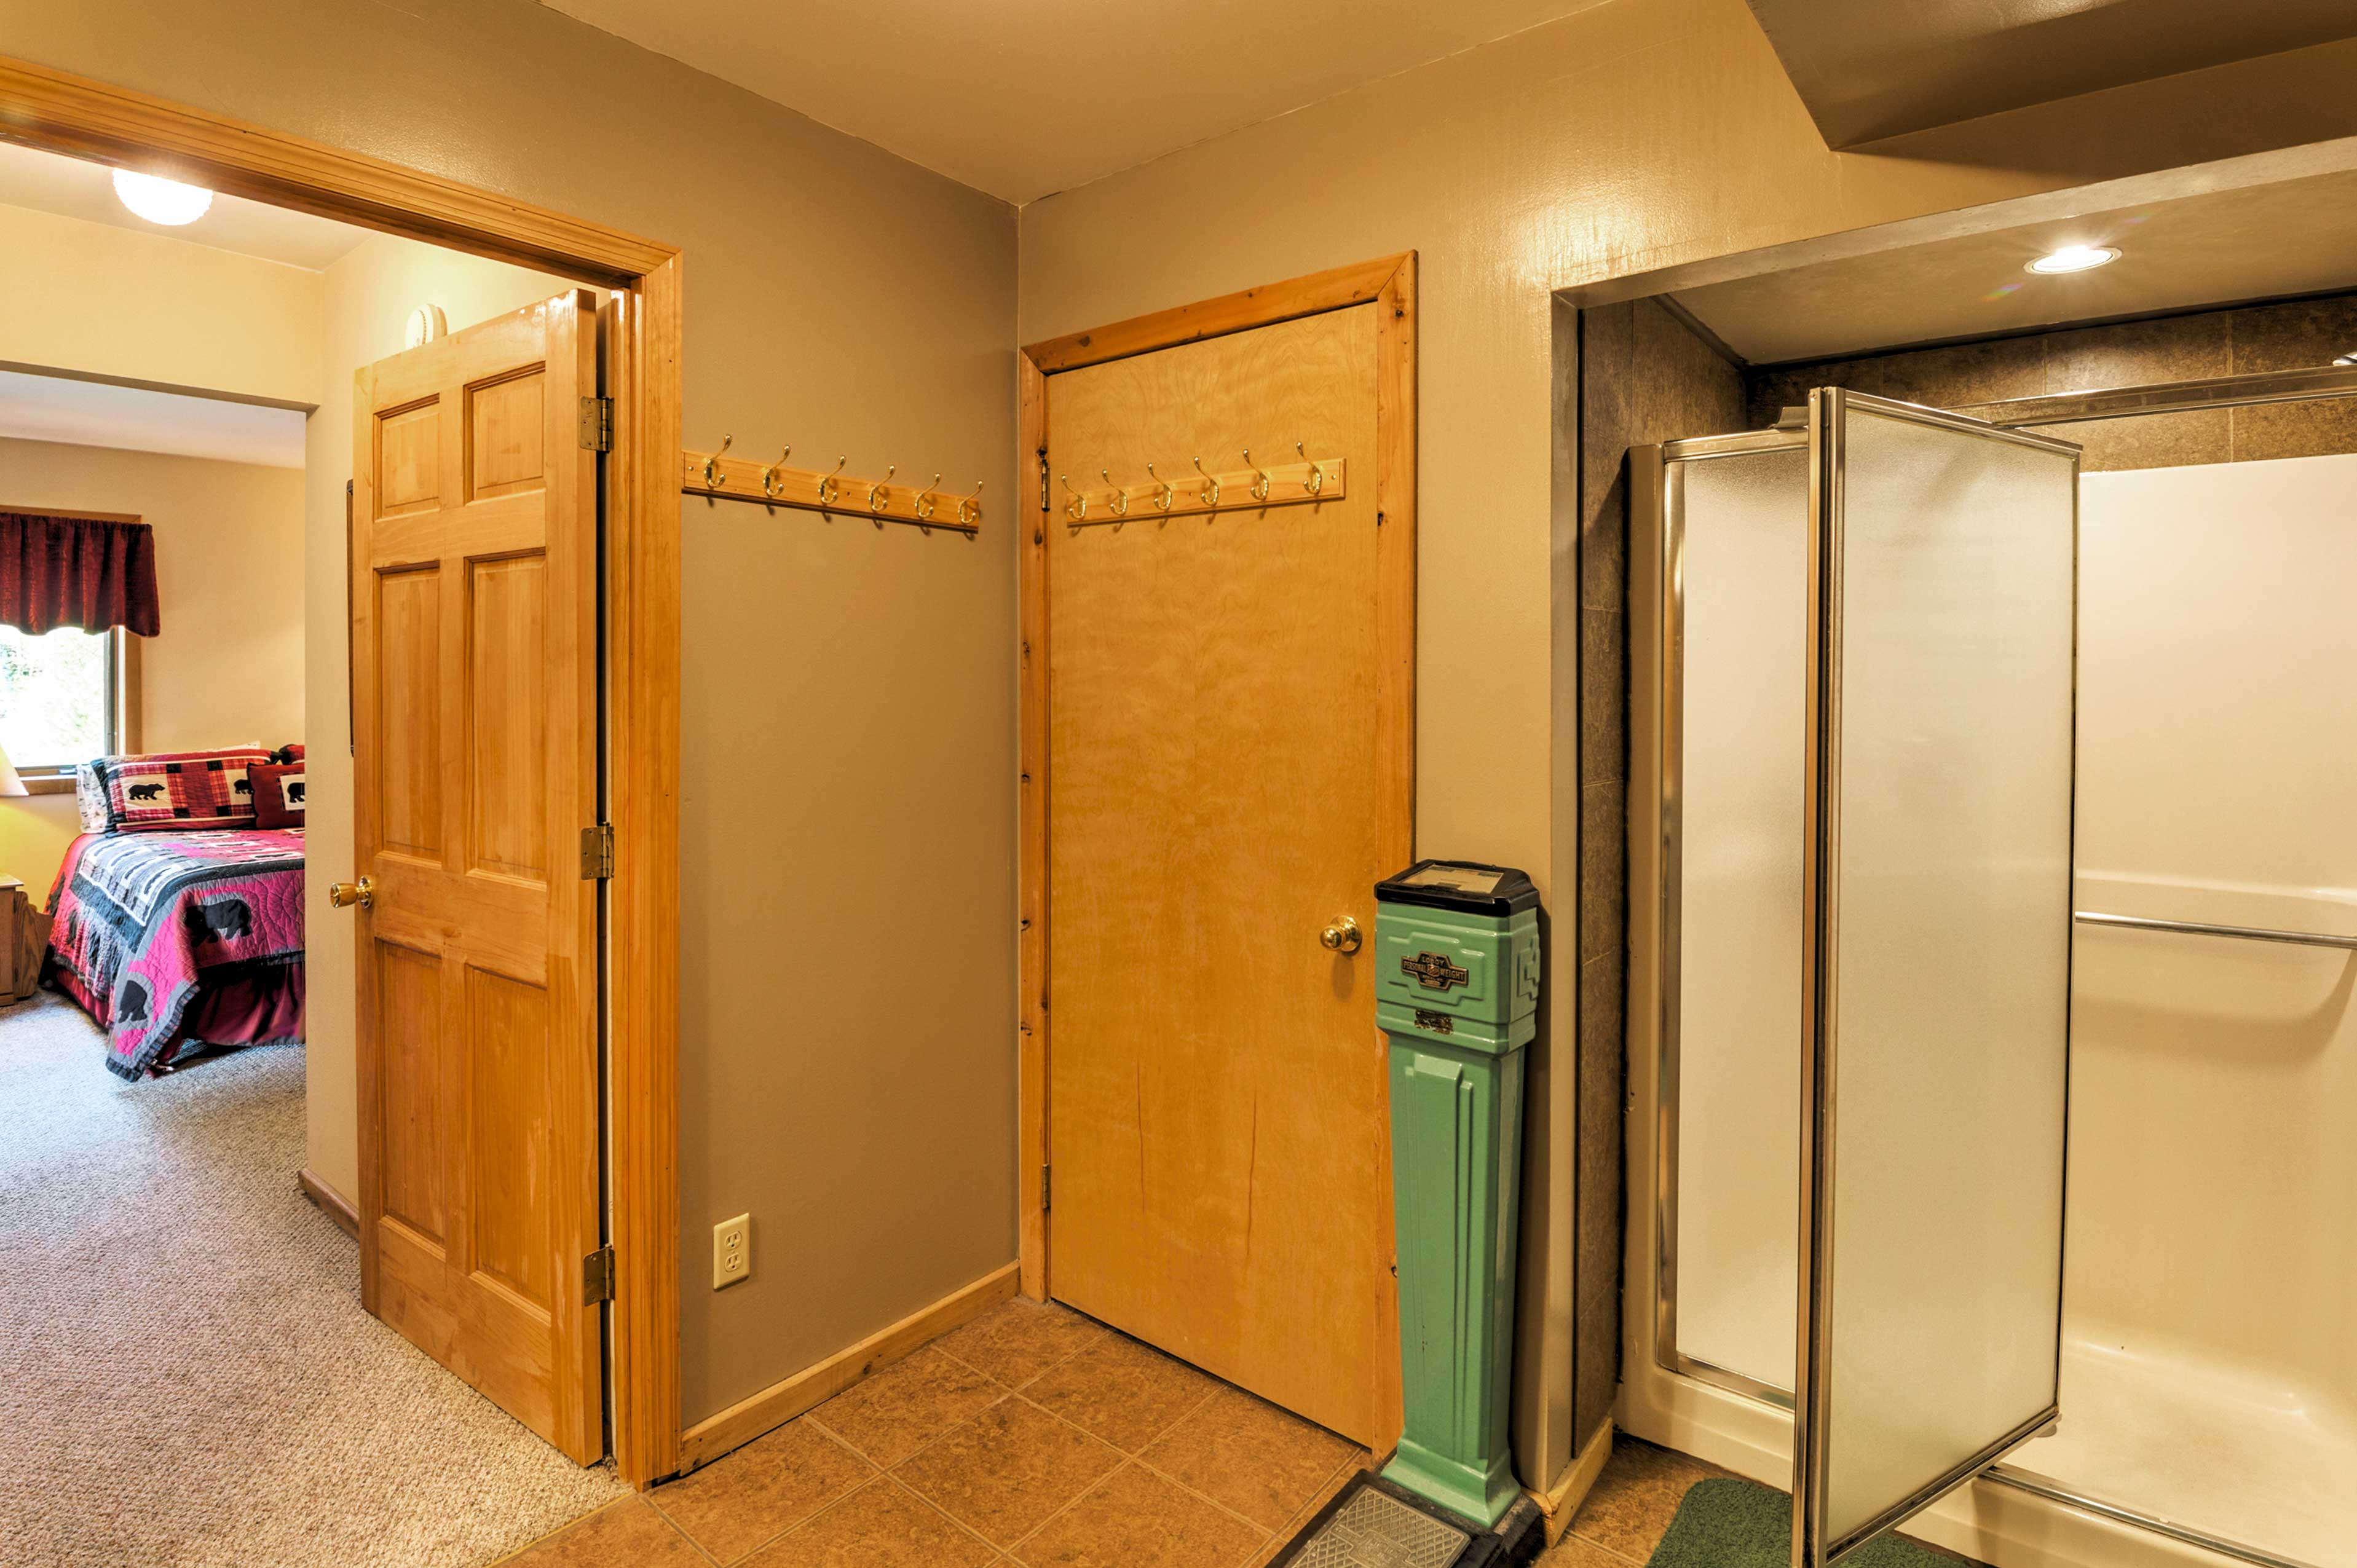 The en-suite master bathroom has a stand-up shower.